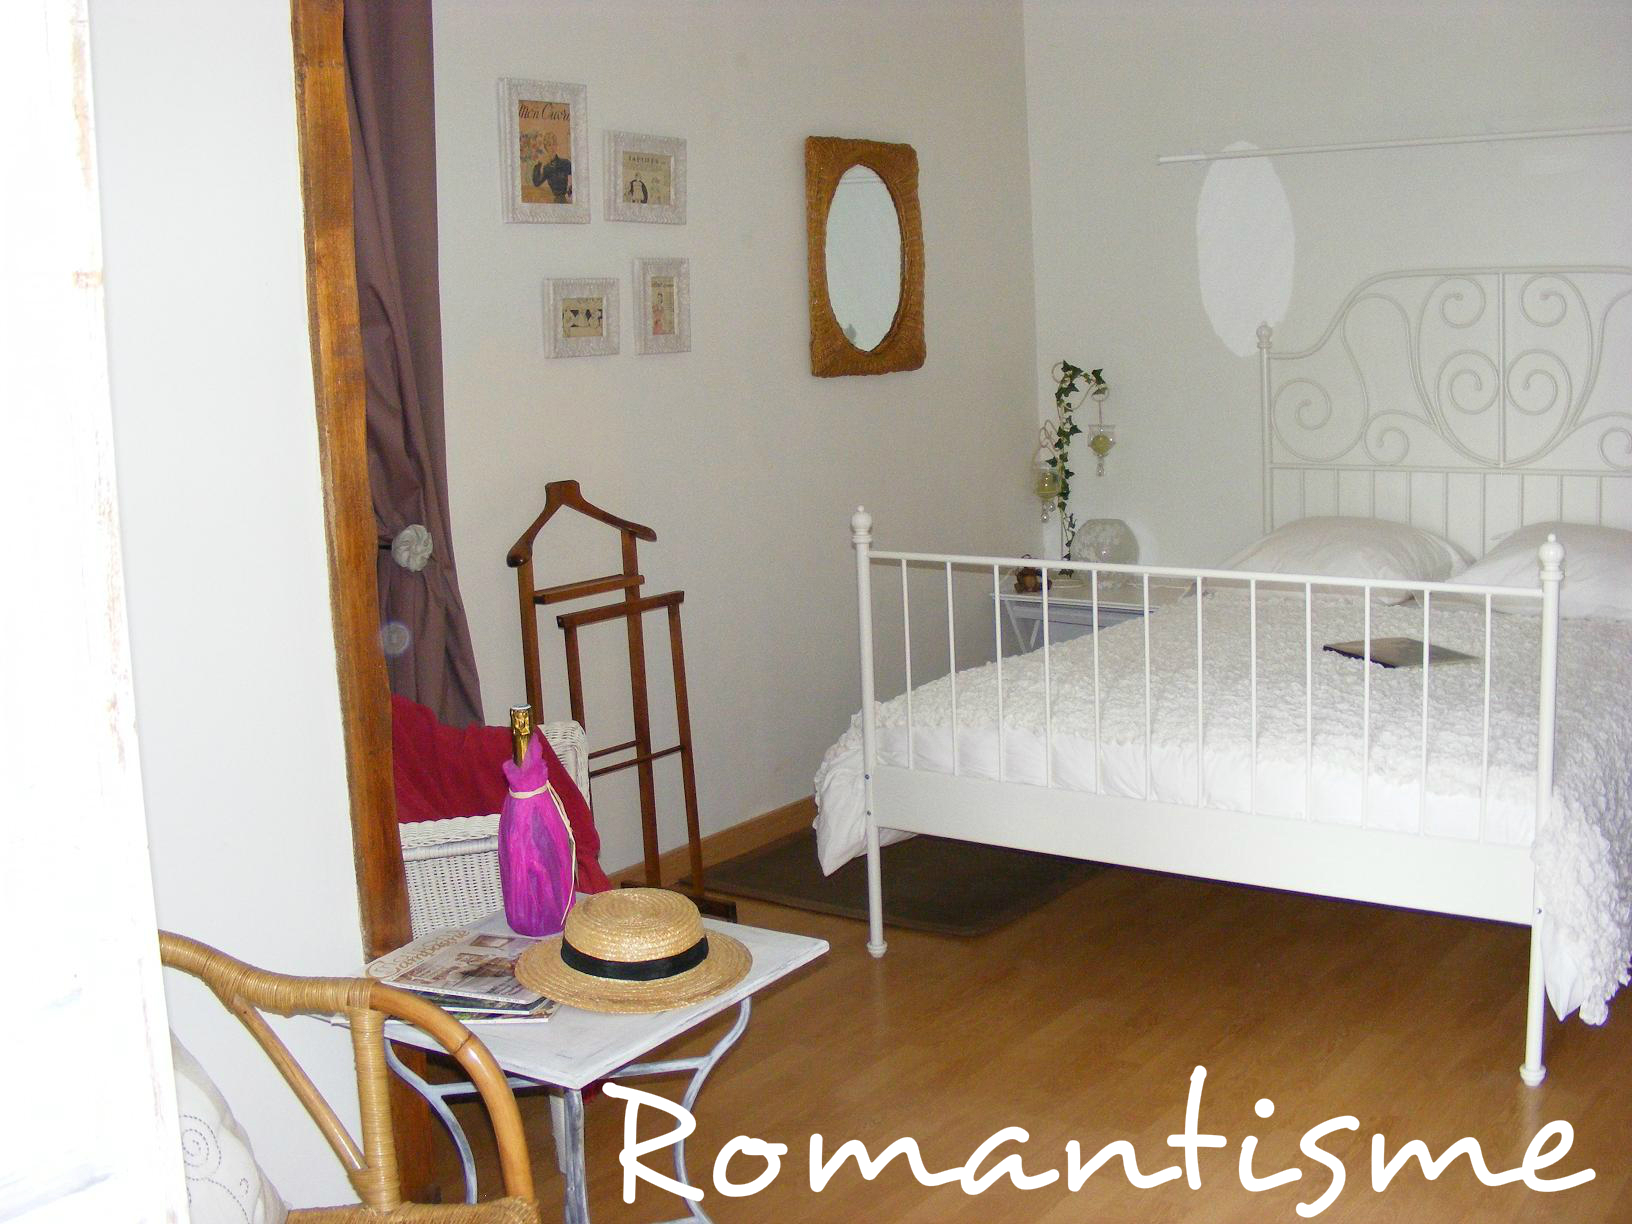 chambre clery romantisme notee 1